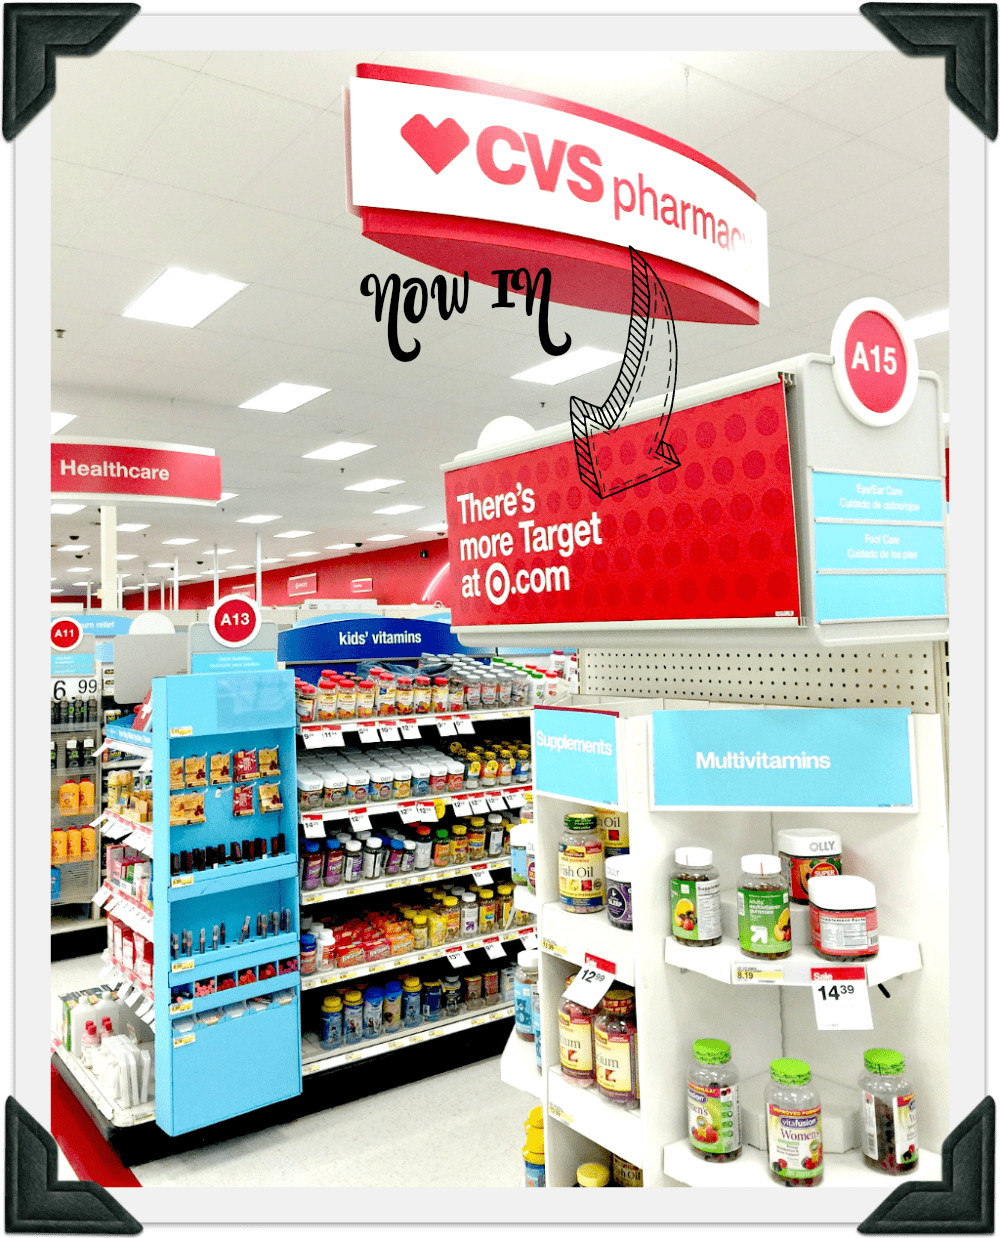 Inside a Target store showing CVS pharmacy sign